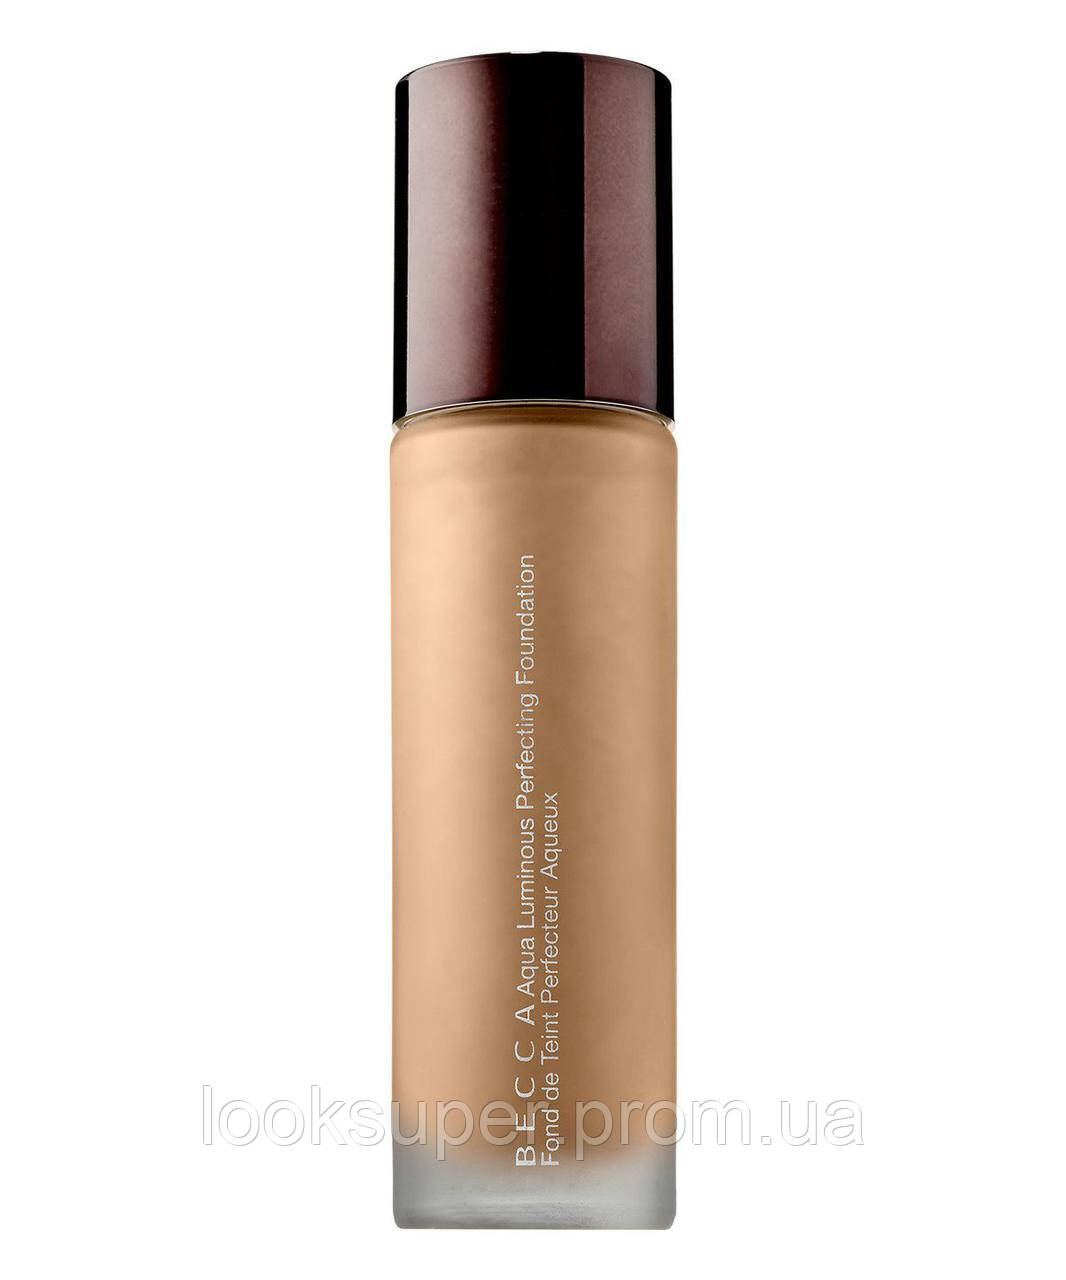 Основа BECCA Aqua Luminous Perfecting